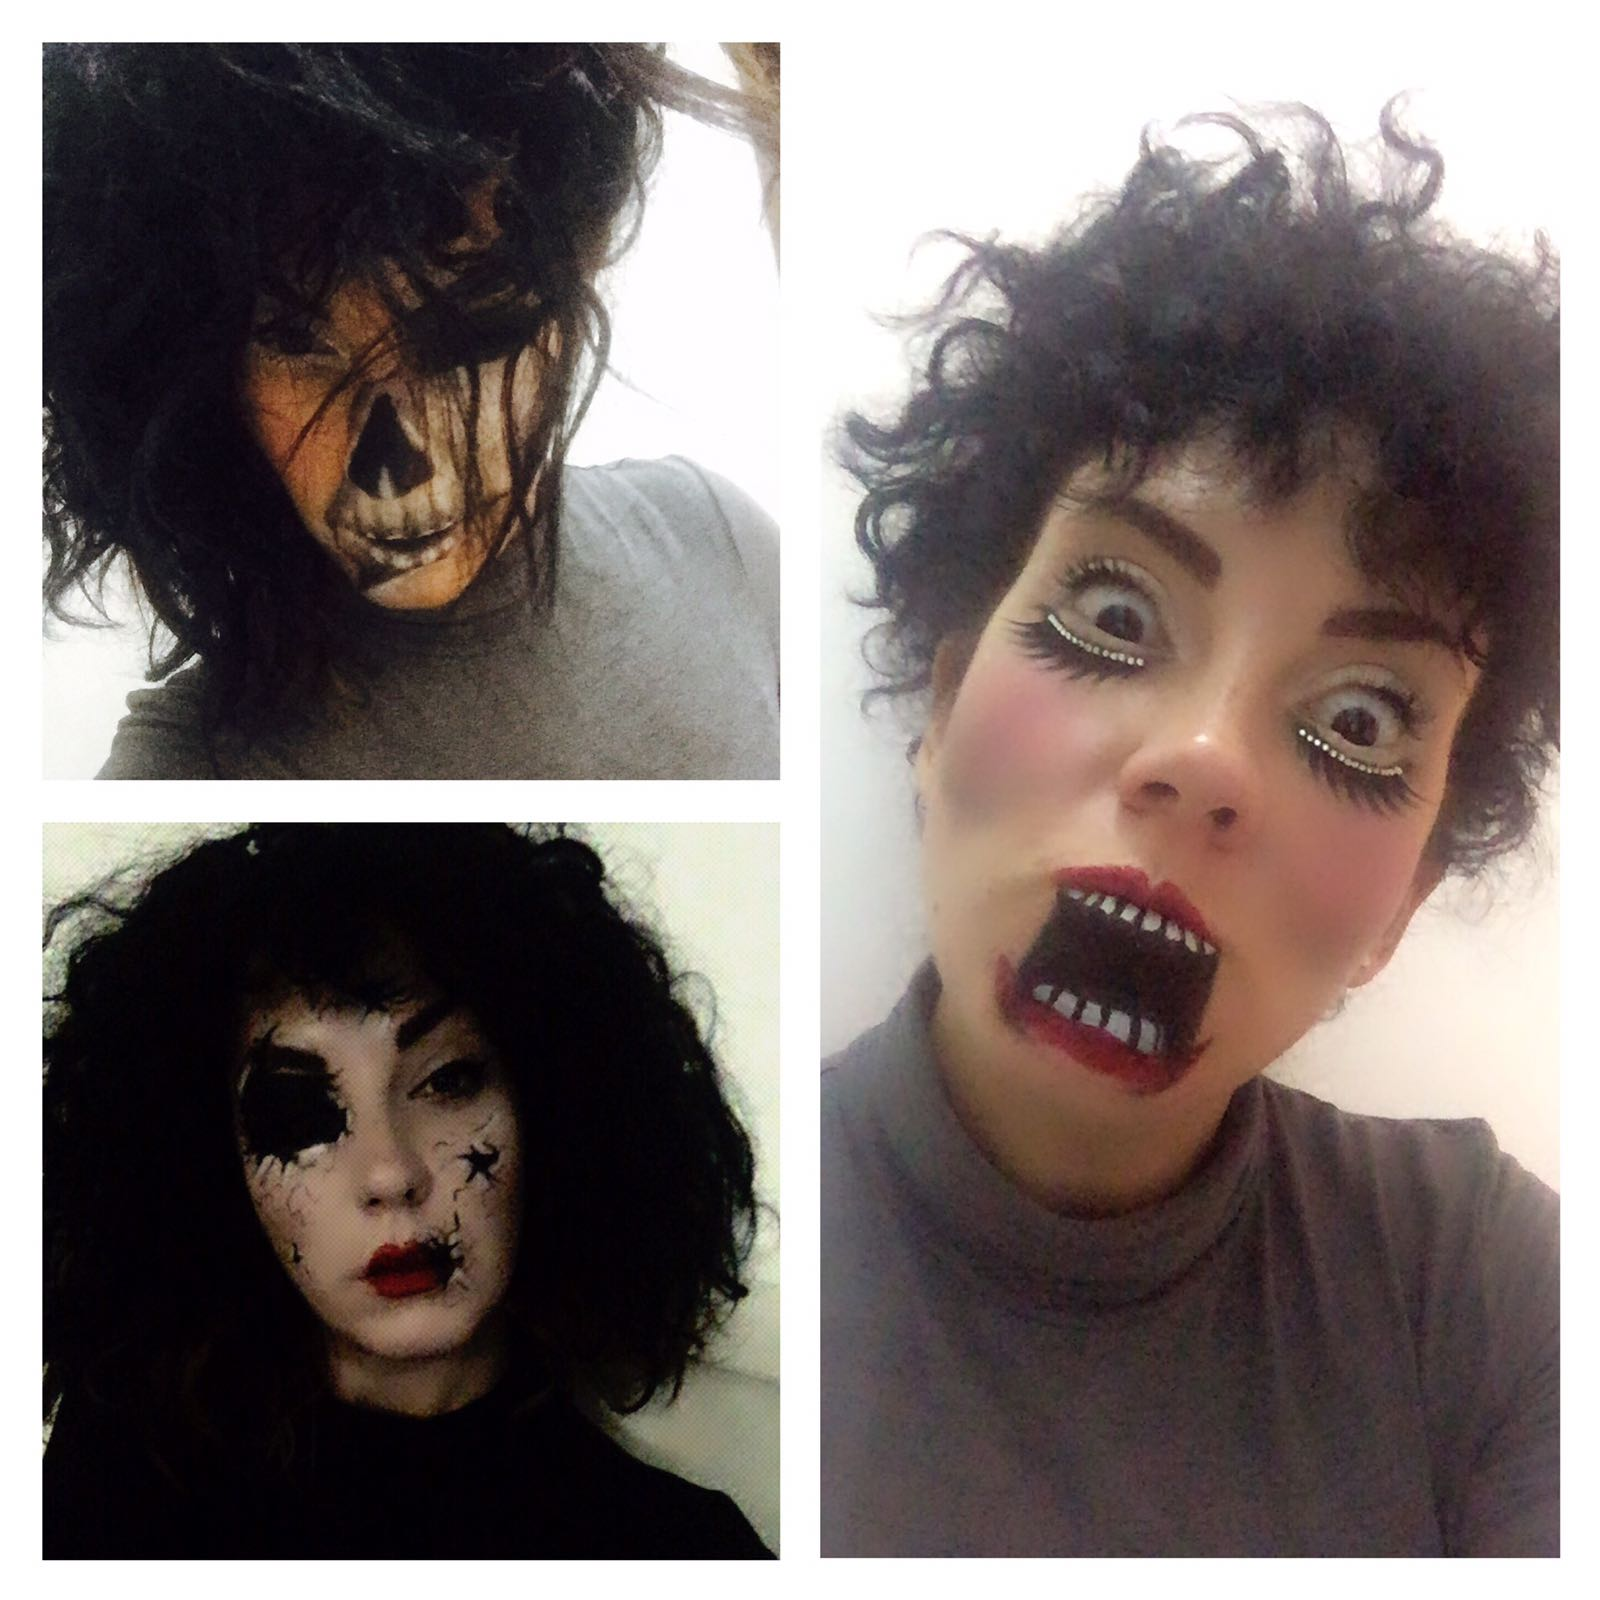 Trucco Halloween Facile.Trucco Semplice Halloween Grey S Shoes Mad For Shopping